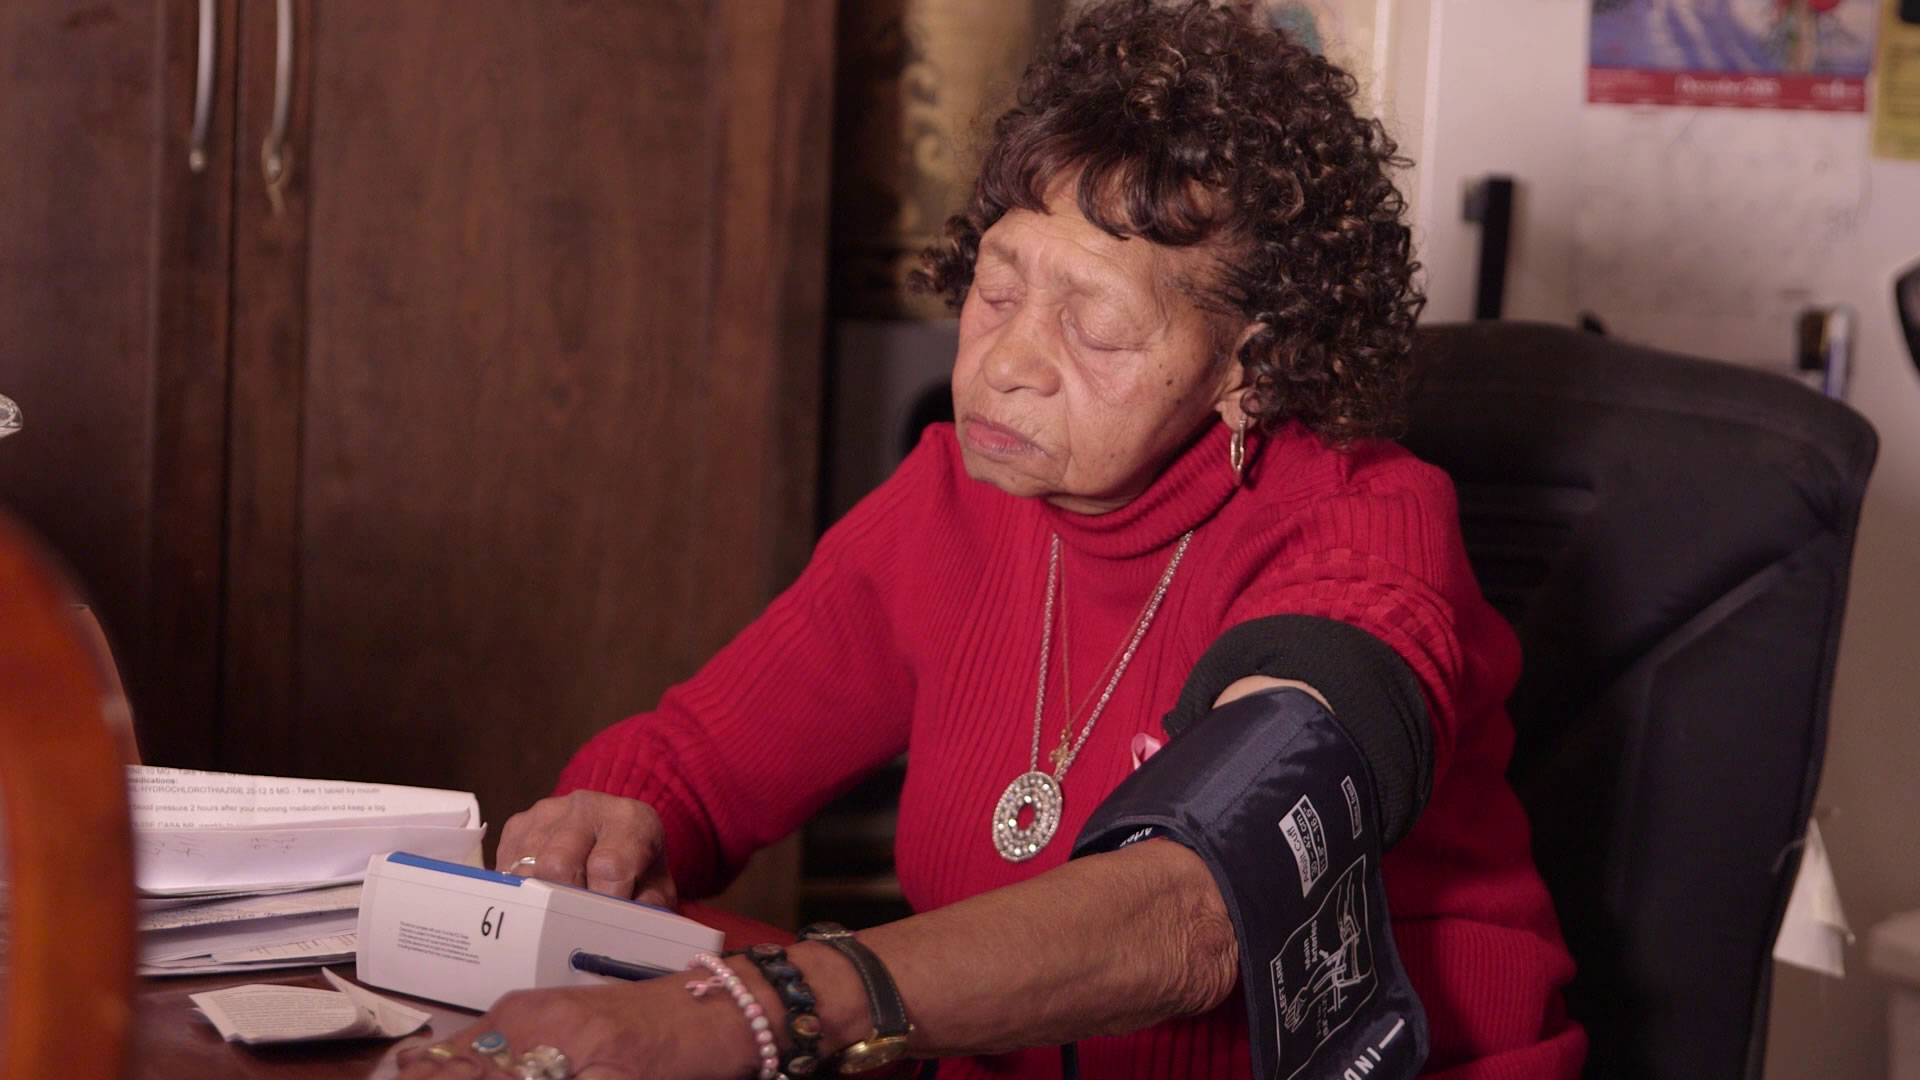 Elderly woman checks her blood pressure in her own home